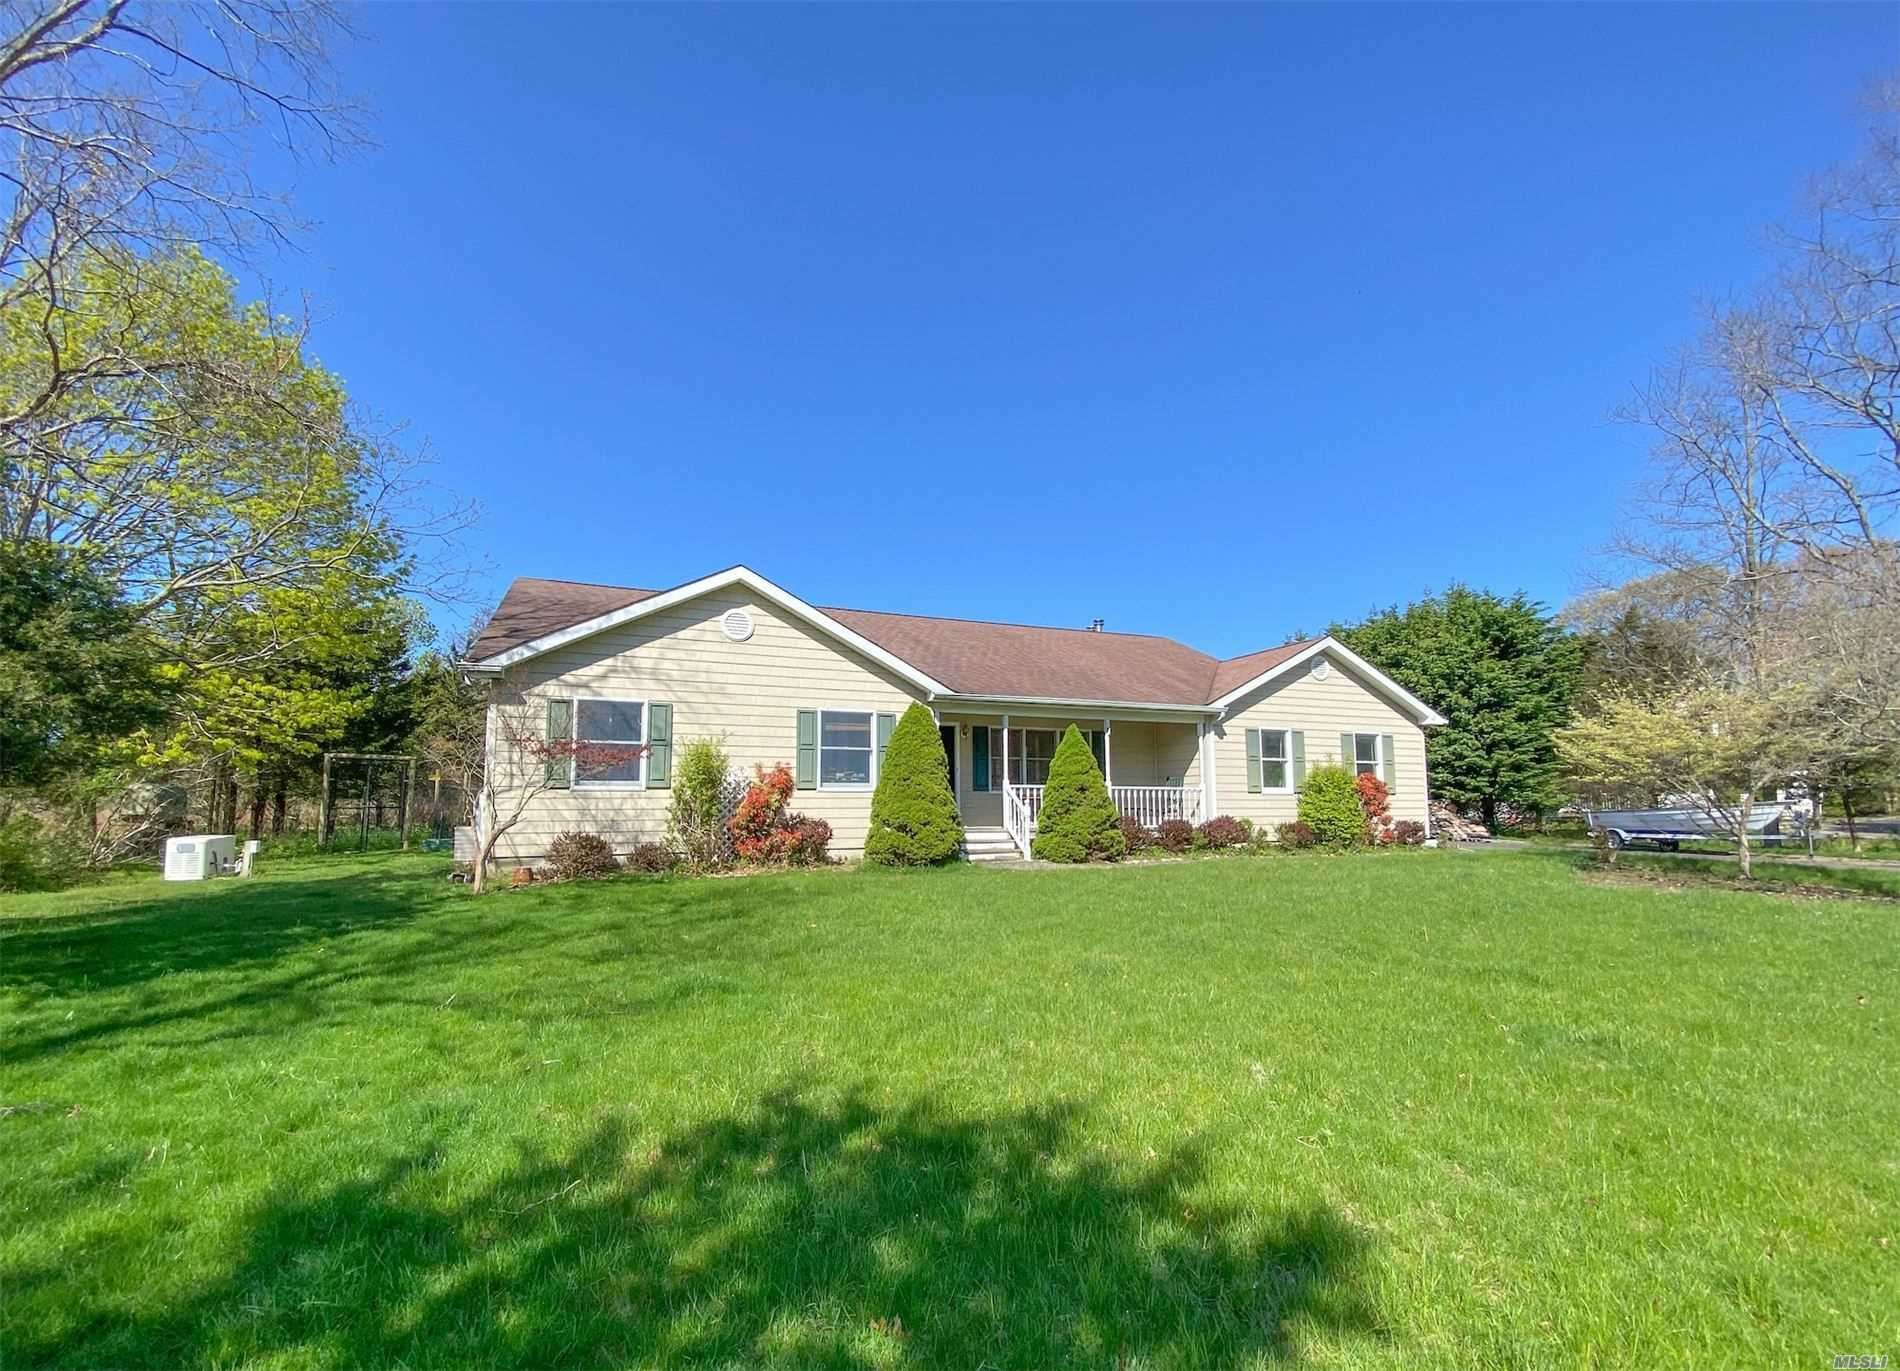 2495 Rocky Point Rd, East Marion, NY 11939 - MLS#: 3214177